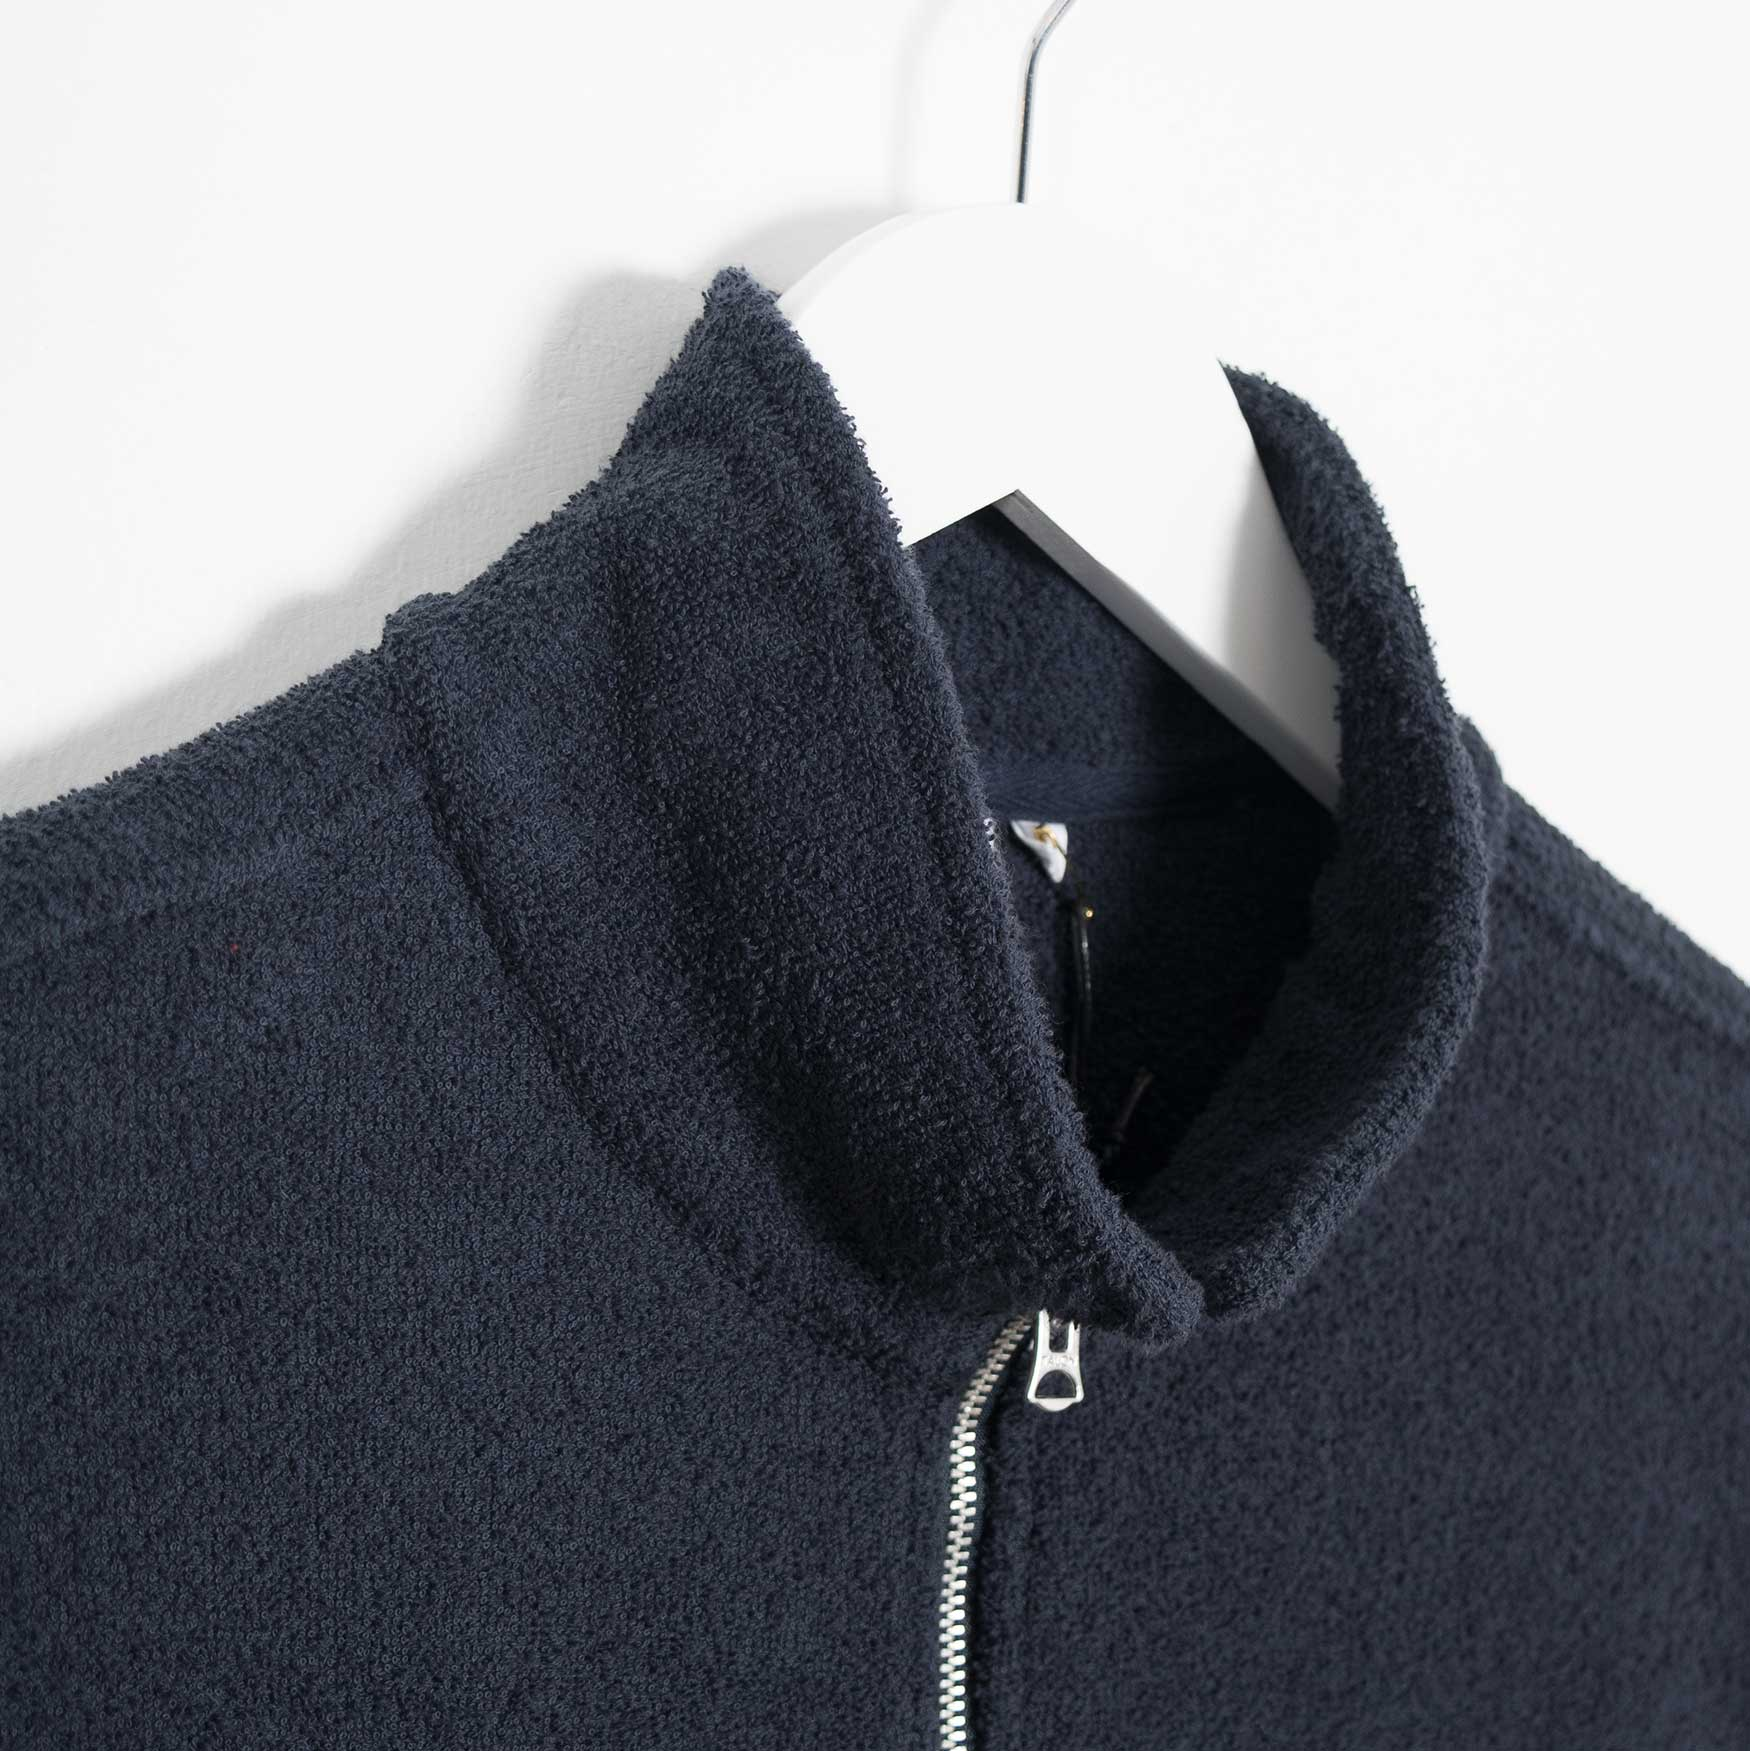 Garbstore Club Zip Up Jacket - Navy